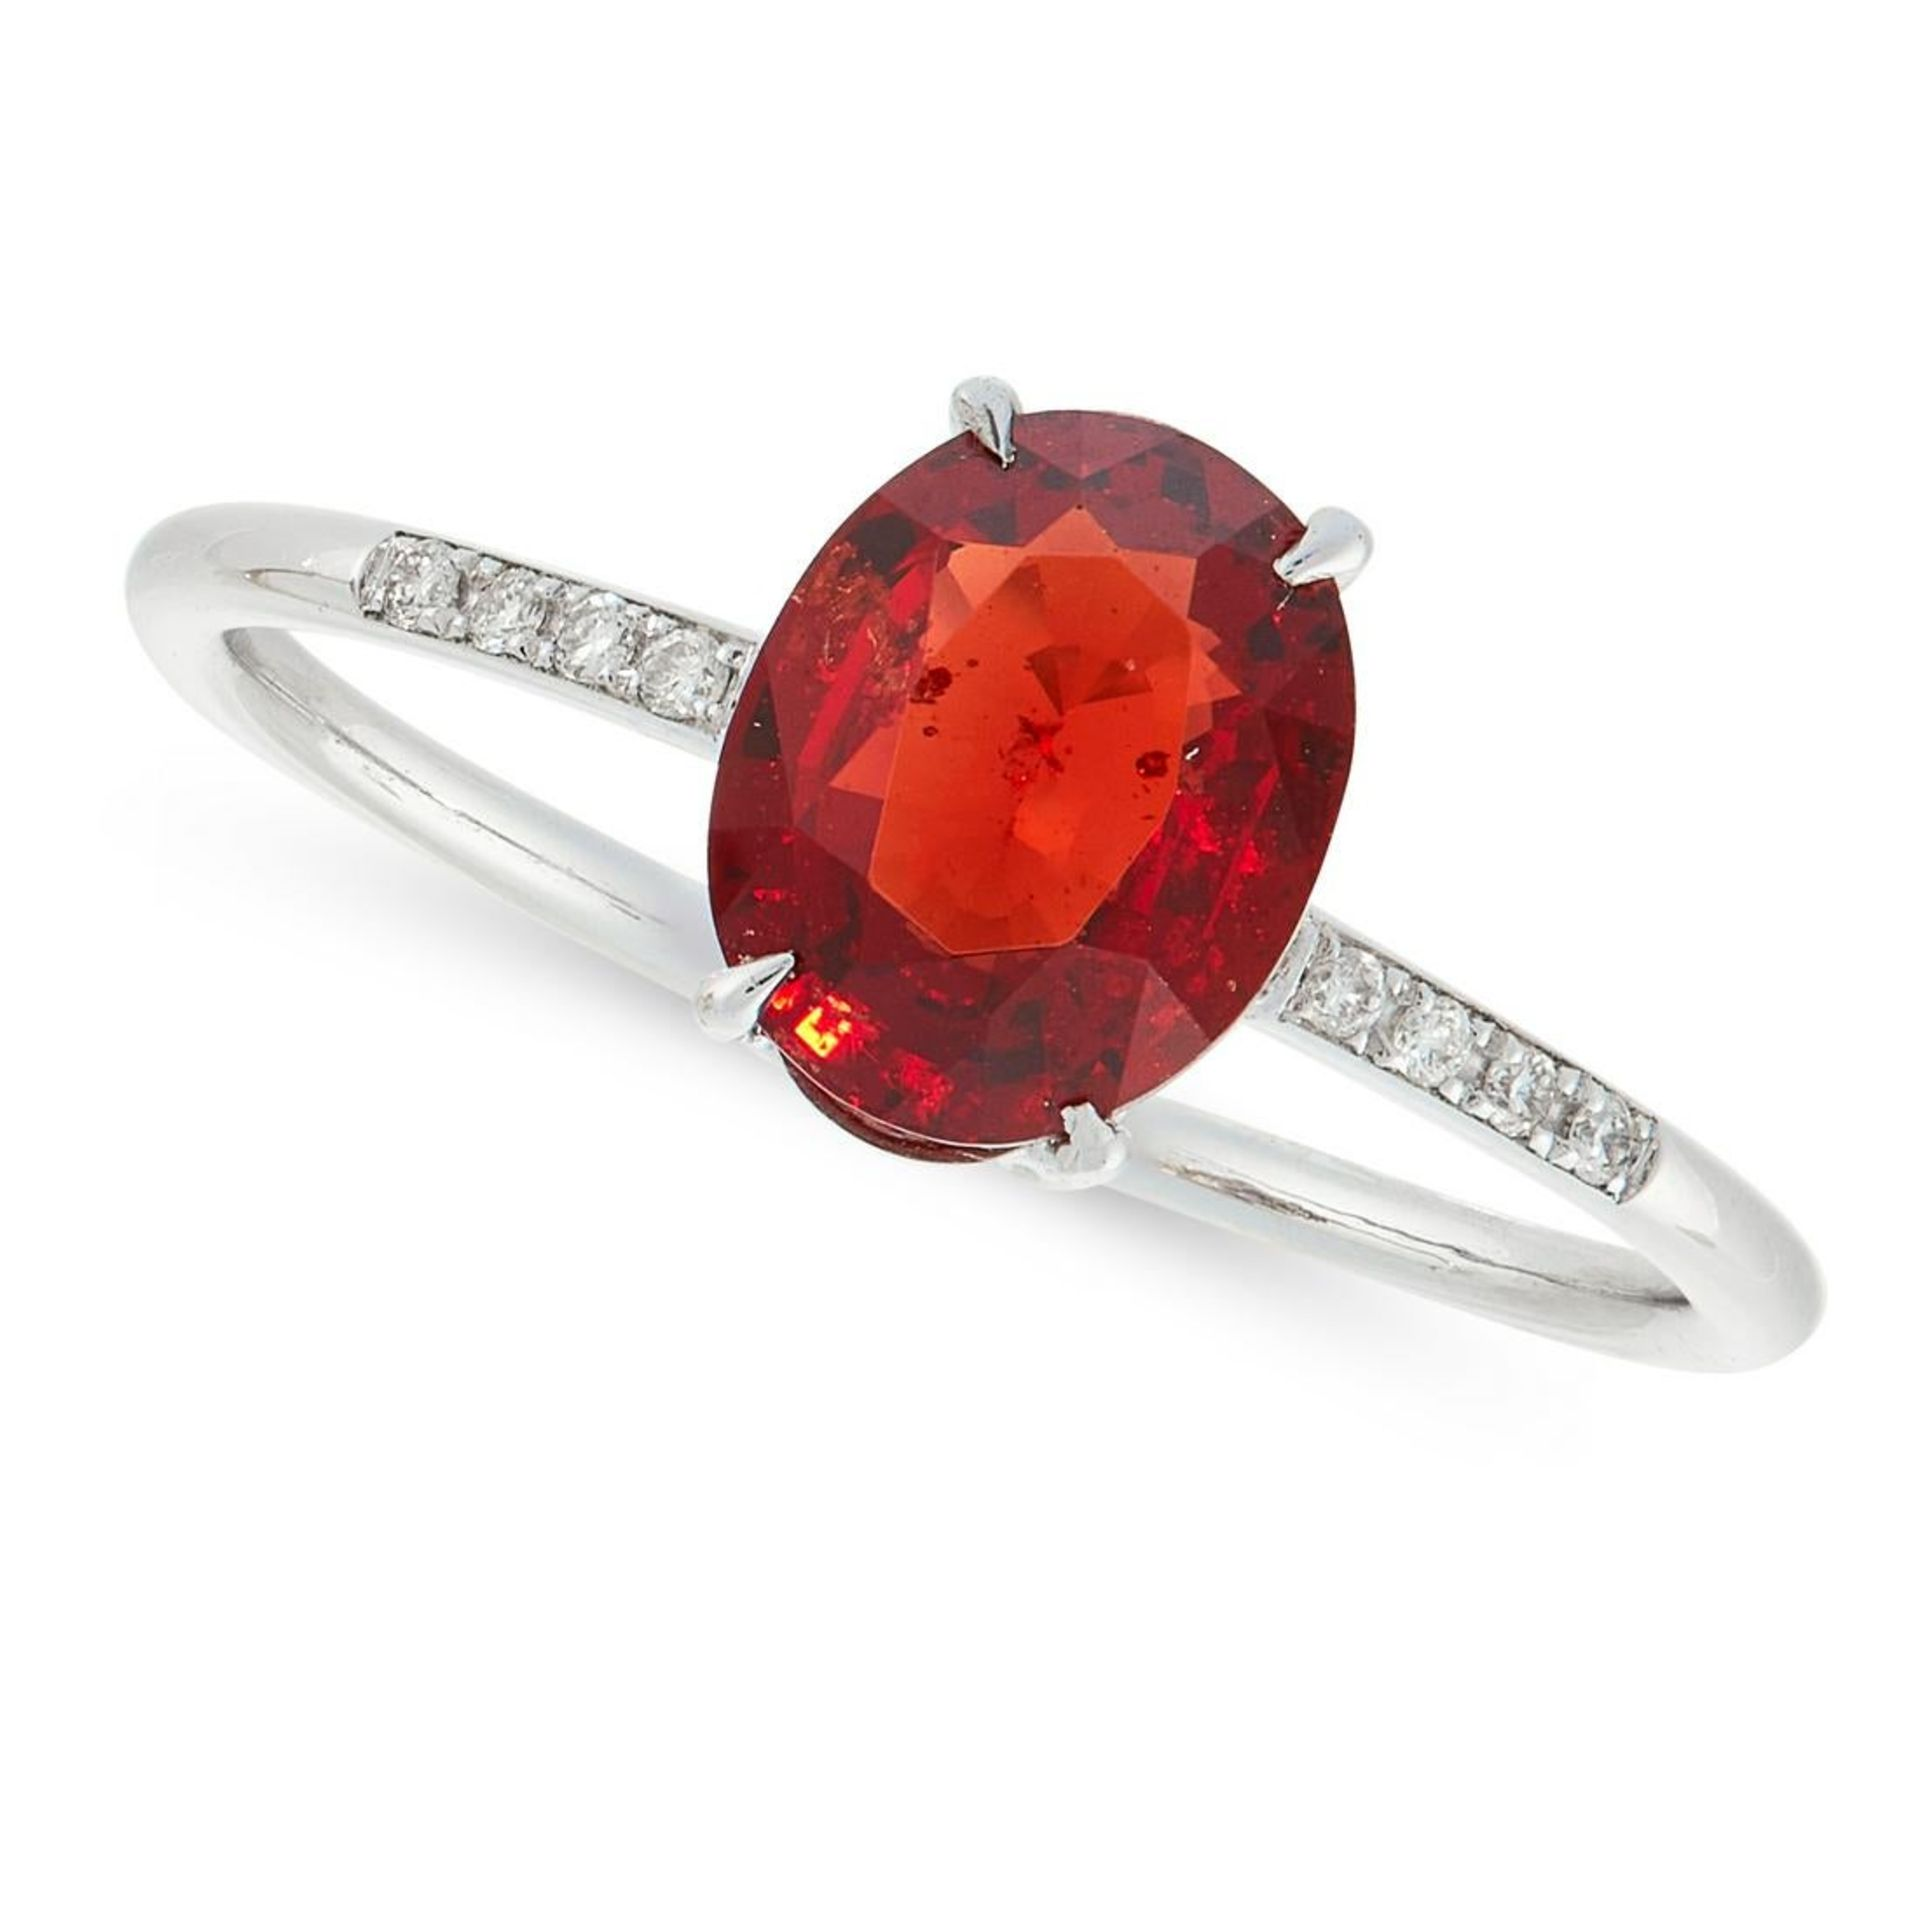 A RED SPINEL AND DIAMOND DRESS RING in 18ct white gold, set with an oval cut red spinel of 1.33